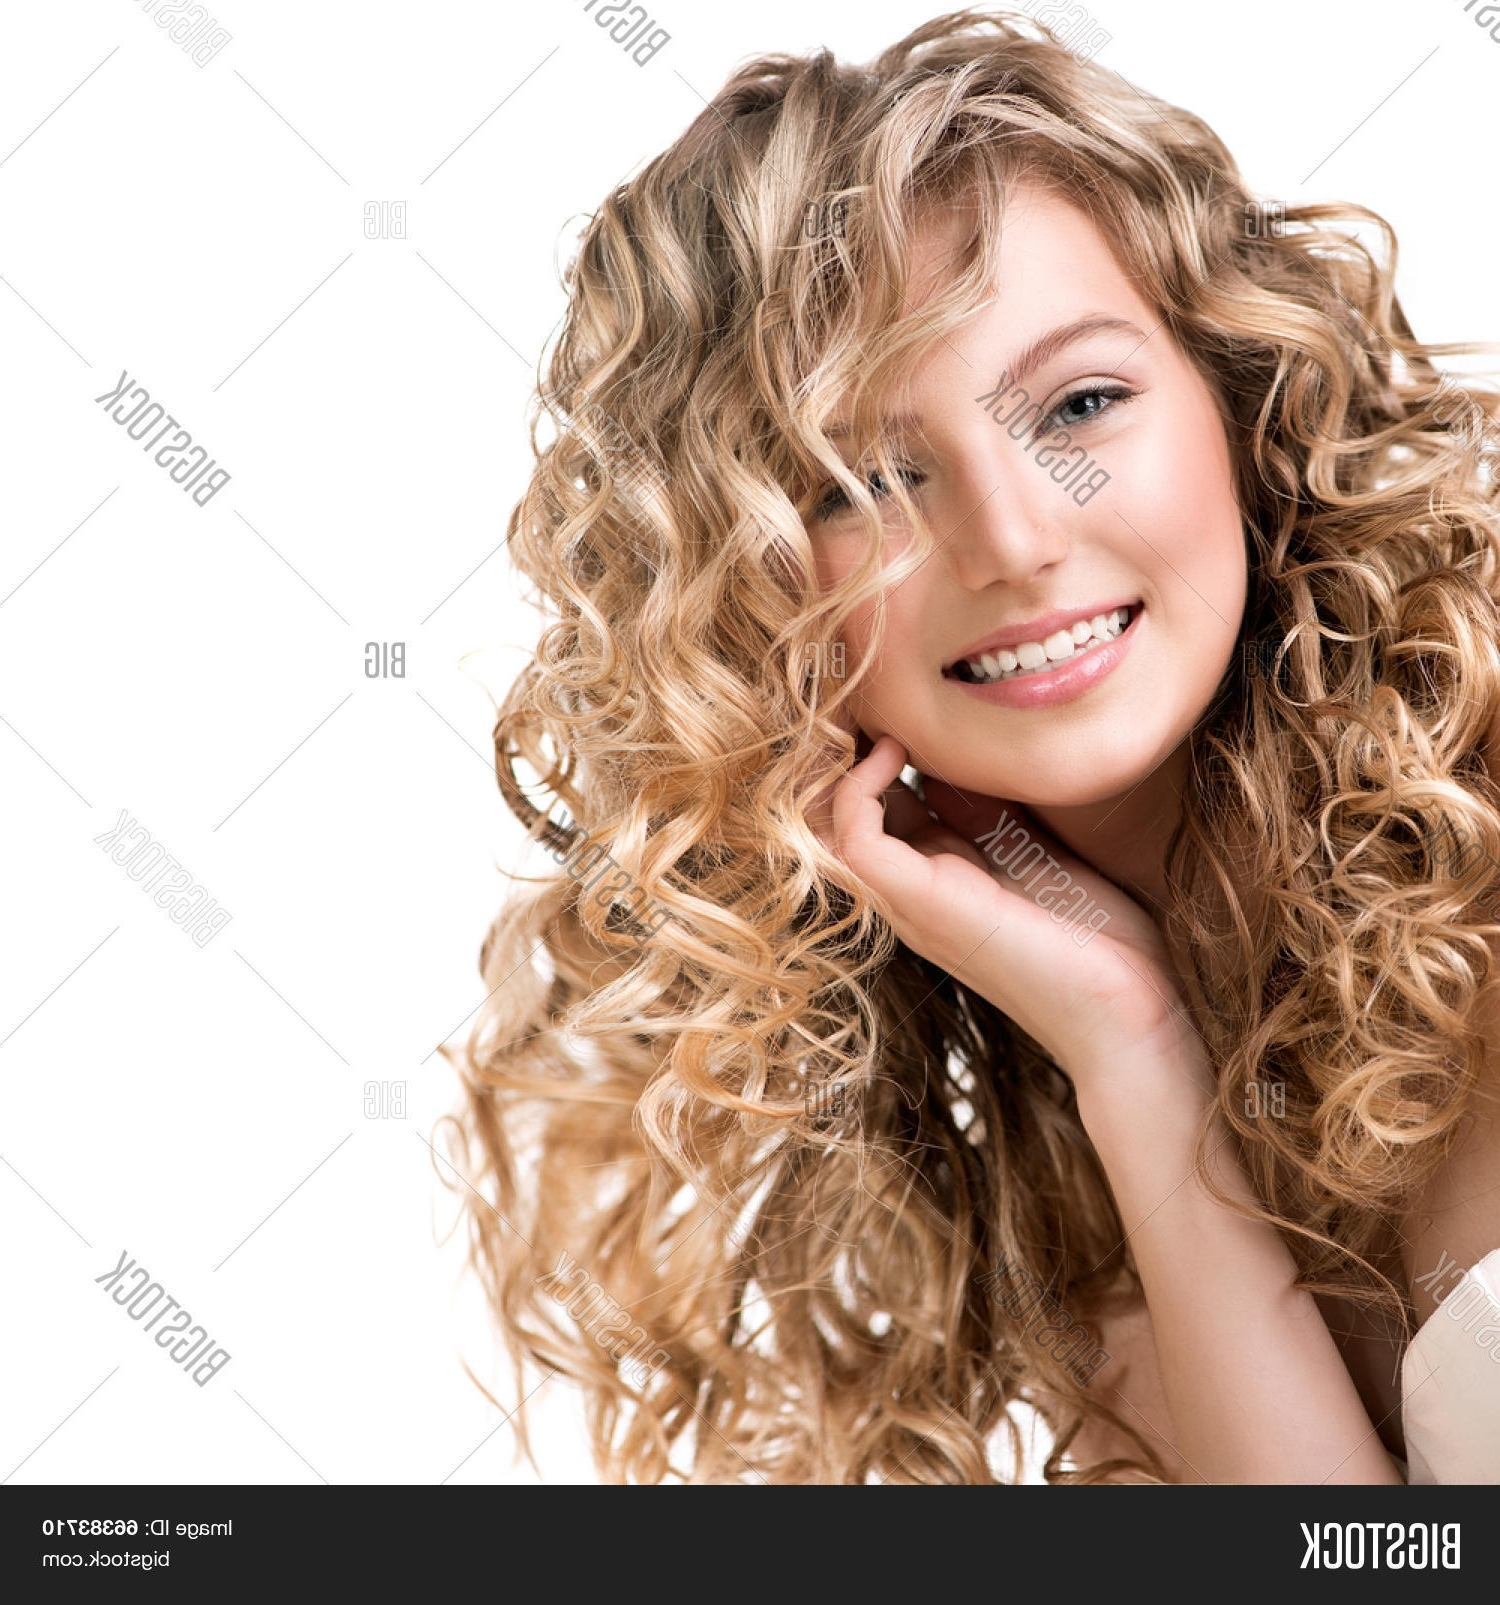 Bigstock For Well Liked Lush And Curly Blonde Hairstyles (View 3 of 20)